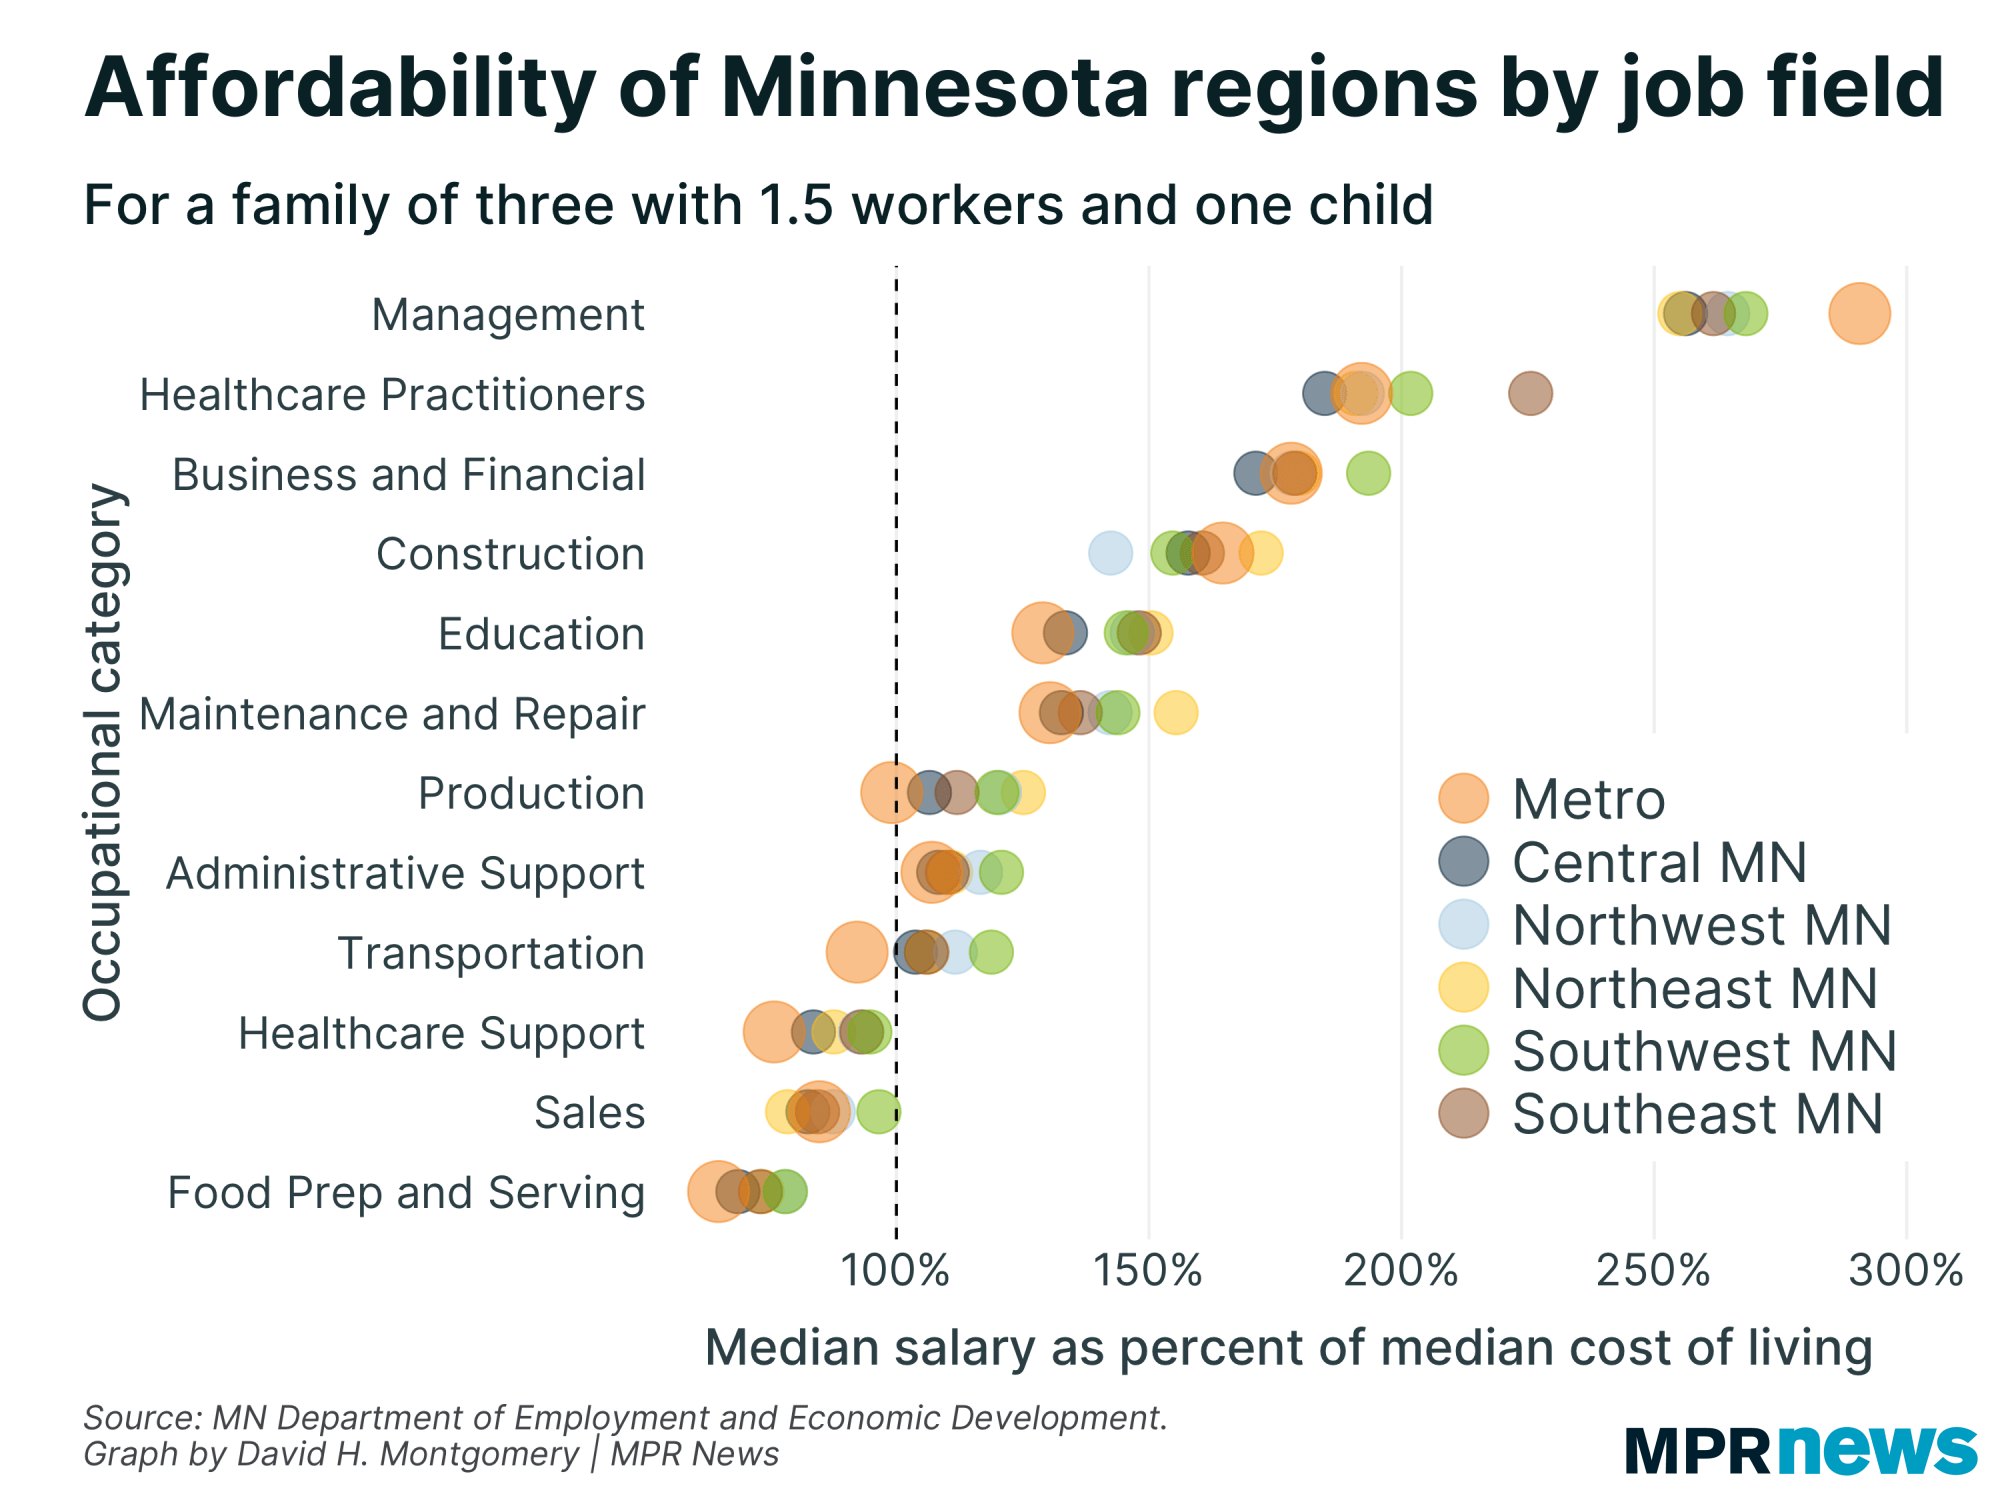 Graphic Affordability of Minnesota regions by job field